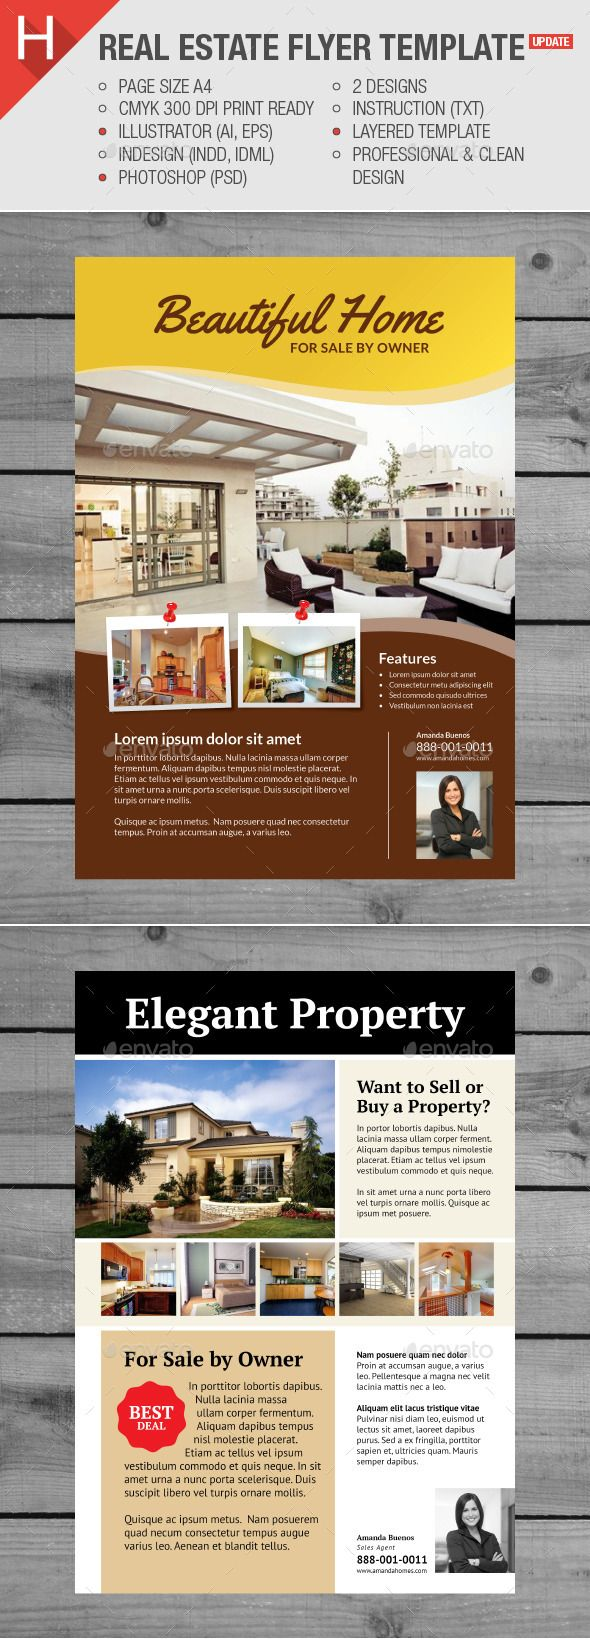 Real Estate Flyer Template Pinterest Real Estate Flyers Flyer - Photoshop real estate flyer templates